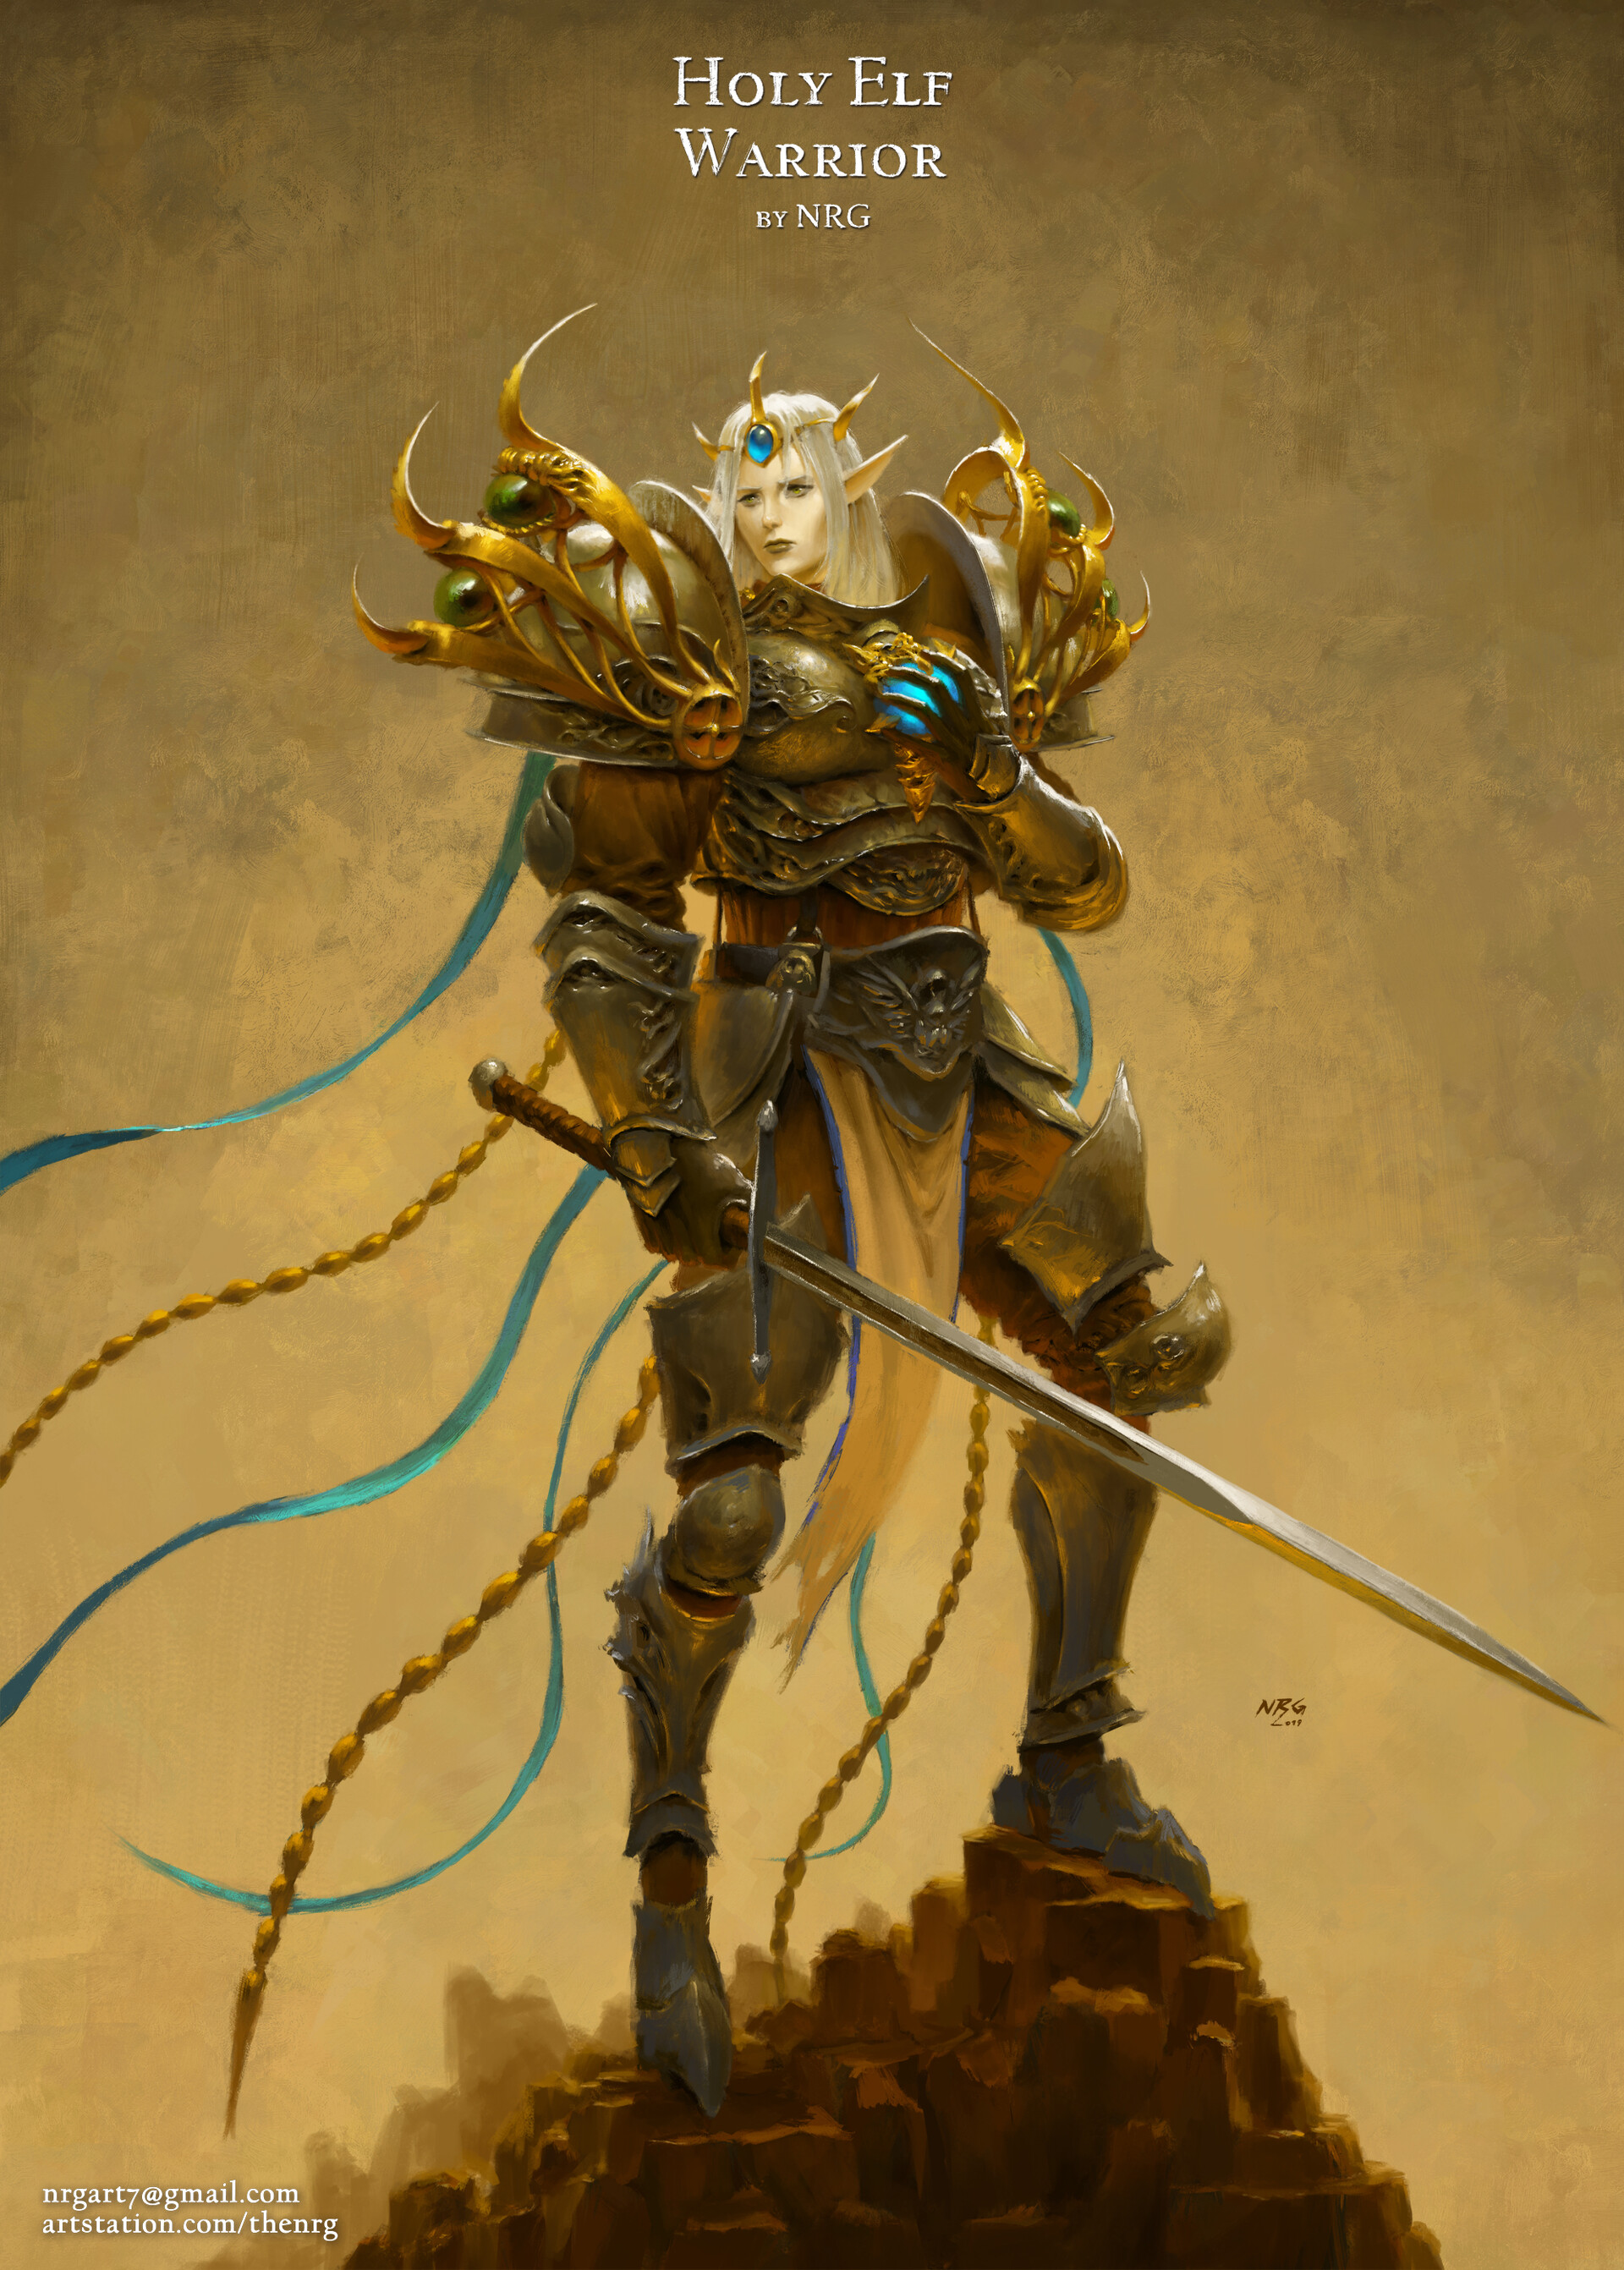 The nrg character design challenge 57 holy elf warrior by nrg web